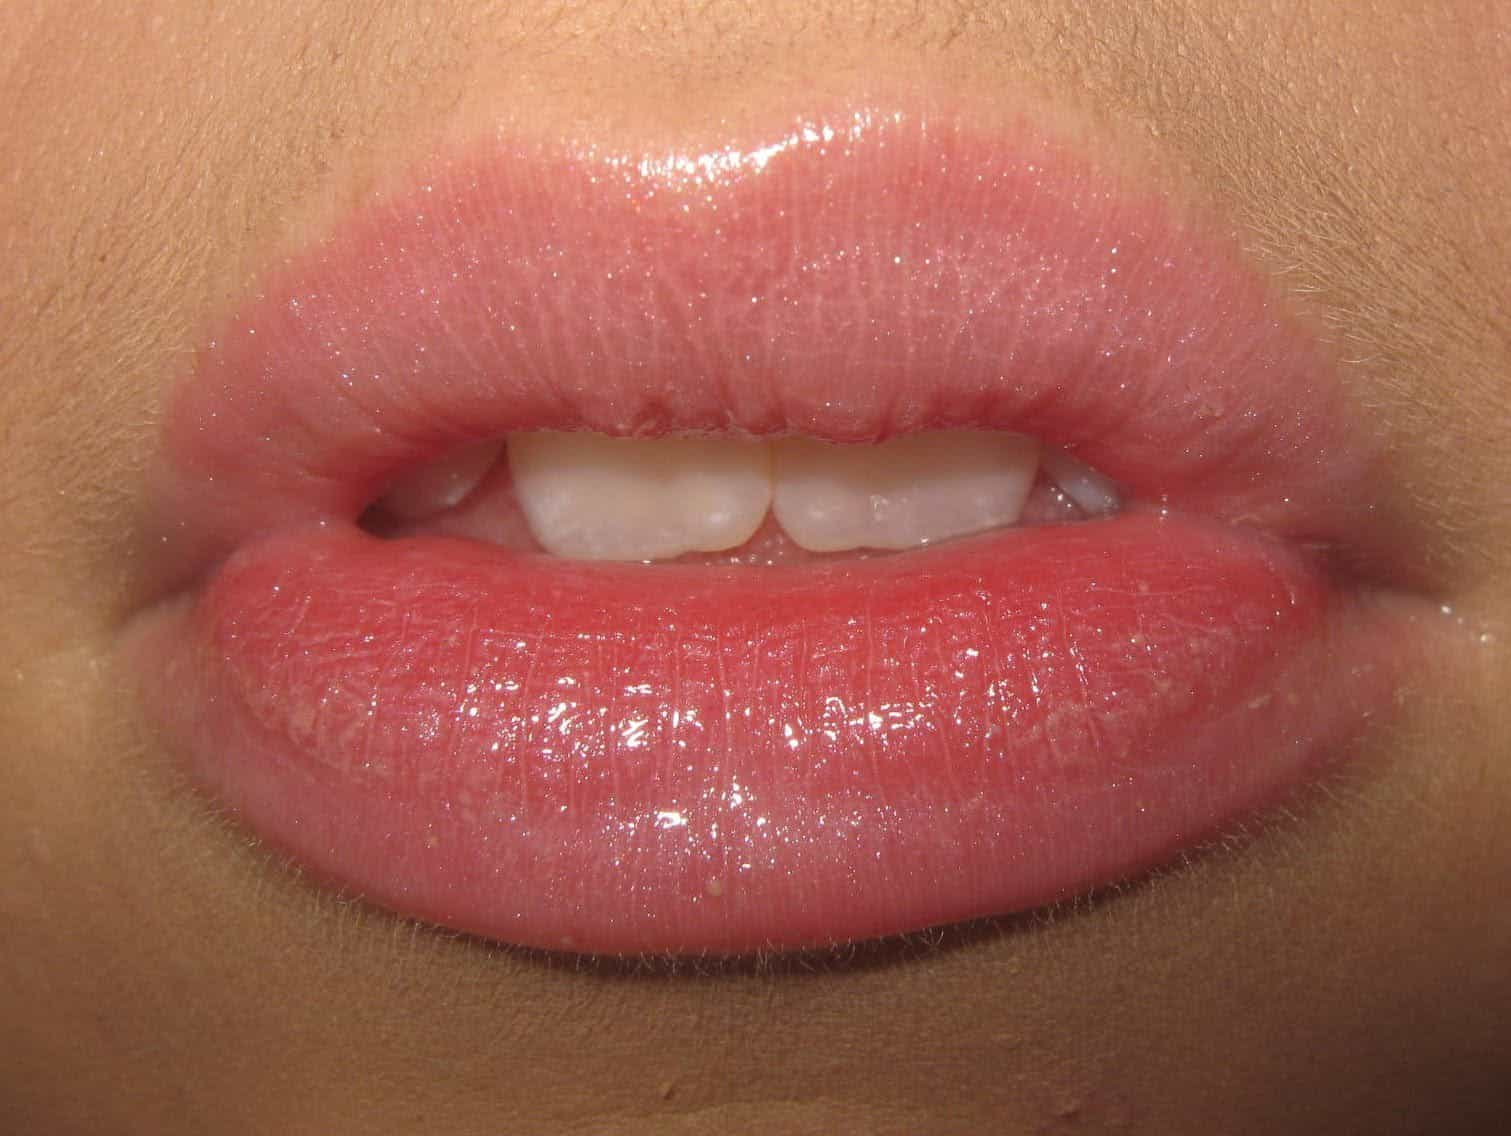 Lip Care Tips to Get Soft and Pink Lips - Natural Home ...